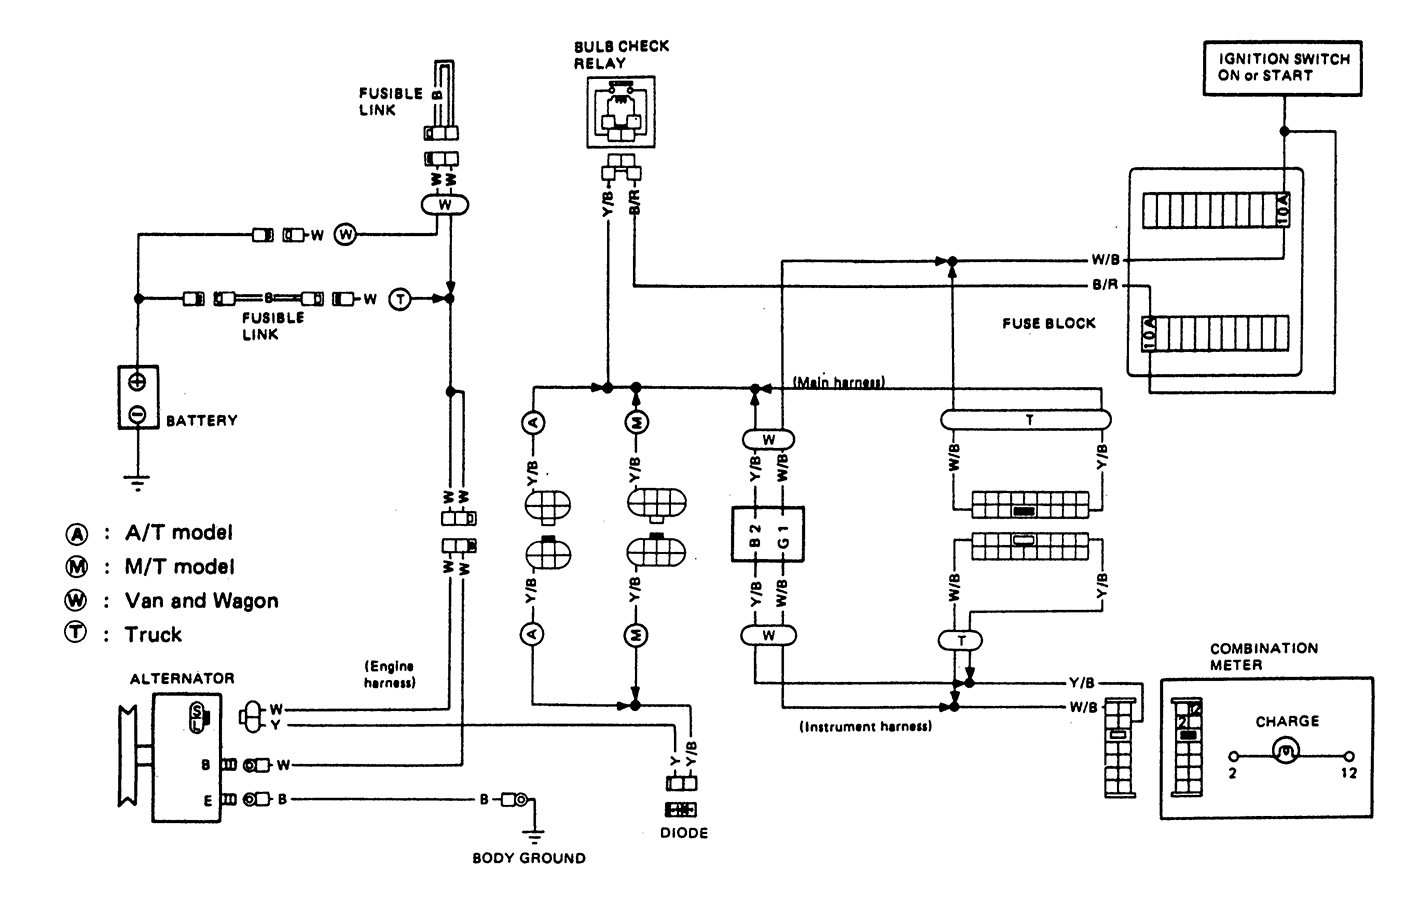 79 Chevy 1500 Ignition Wiring Diagram - Wiring Diagram ...